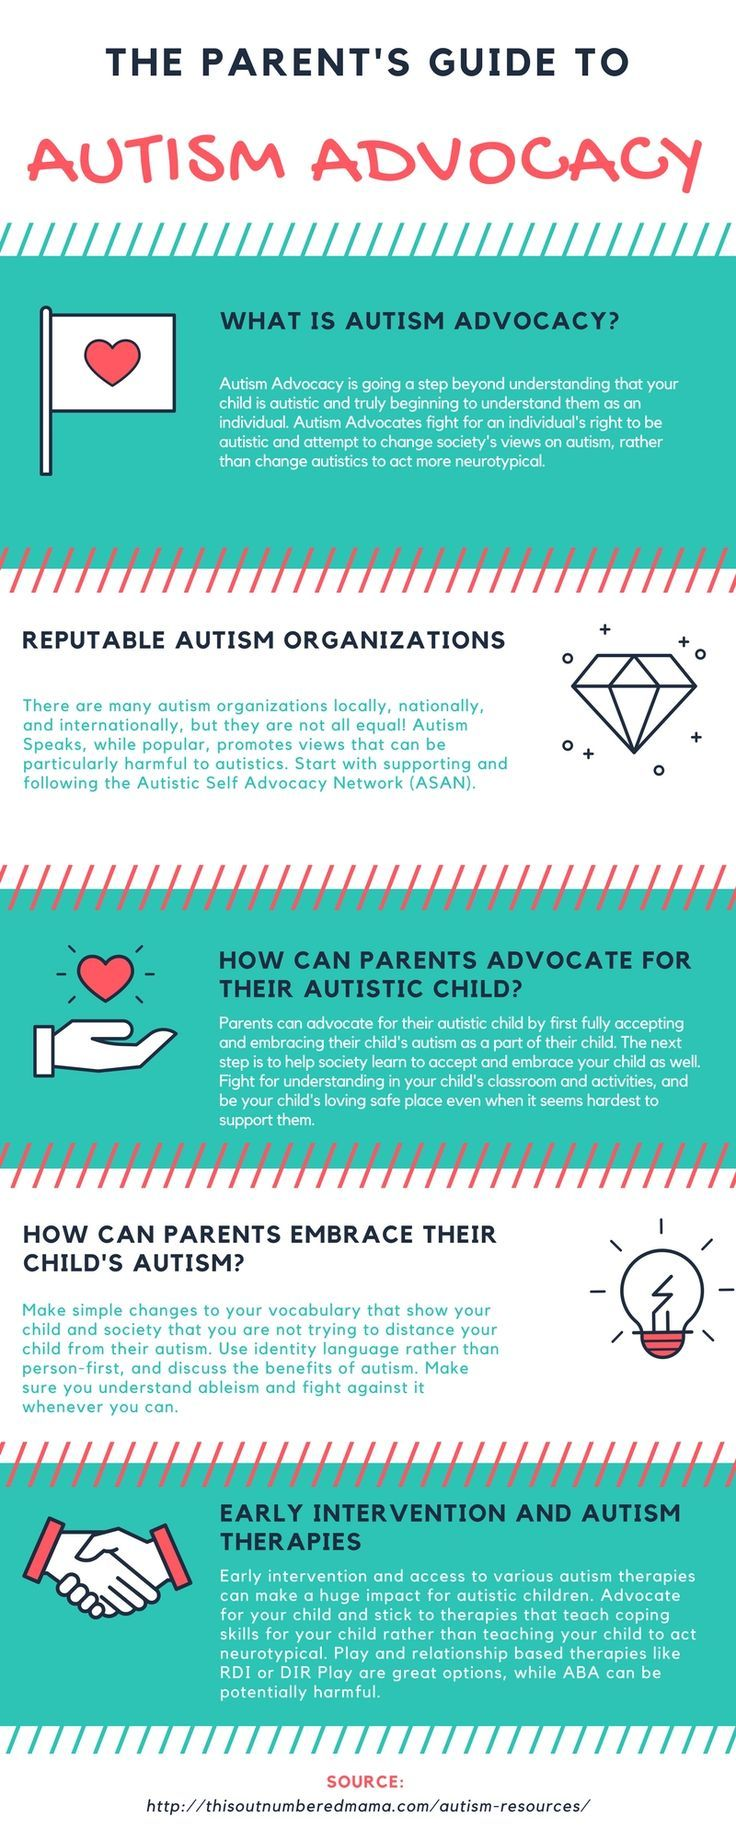 Autism Diagnosis Explained >> Self Advocacy Explained The Practical Guide To Autism For Parents